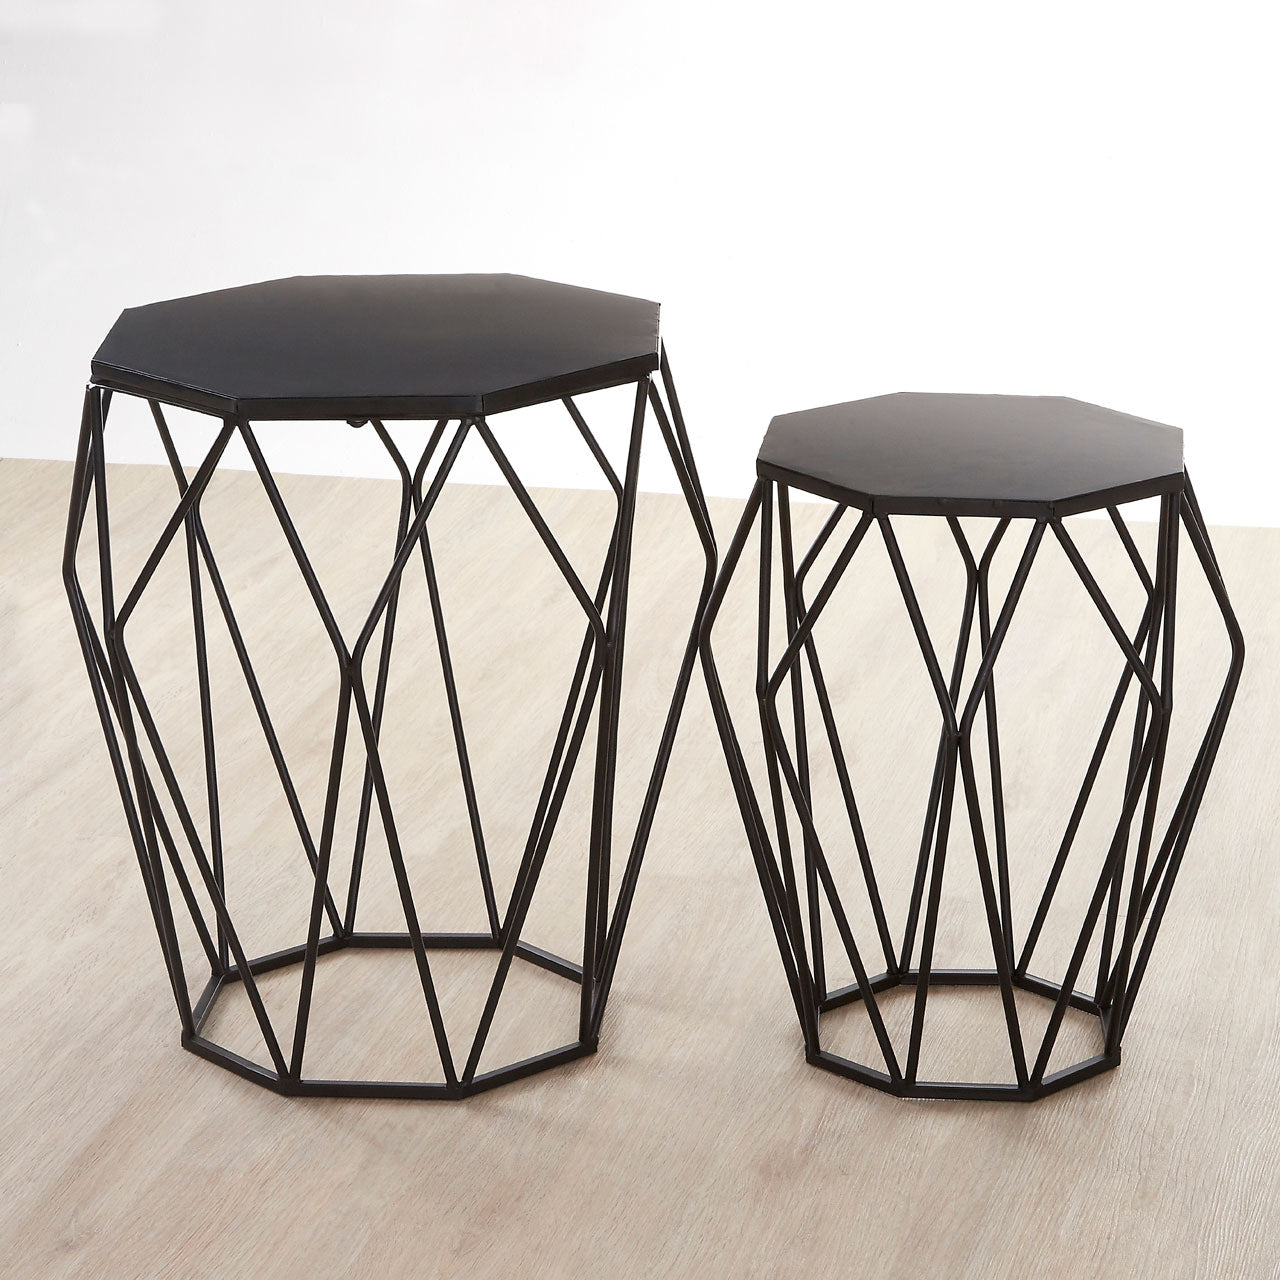 Avantis Black Metal Tables - Ezzo